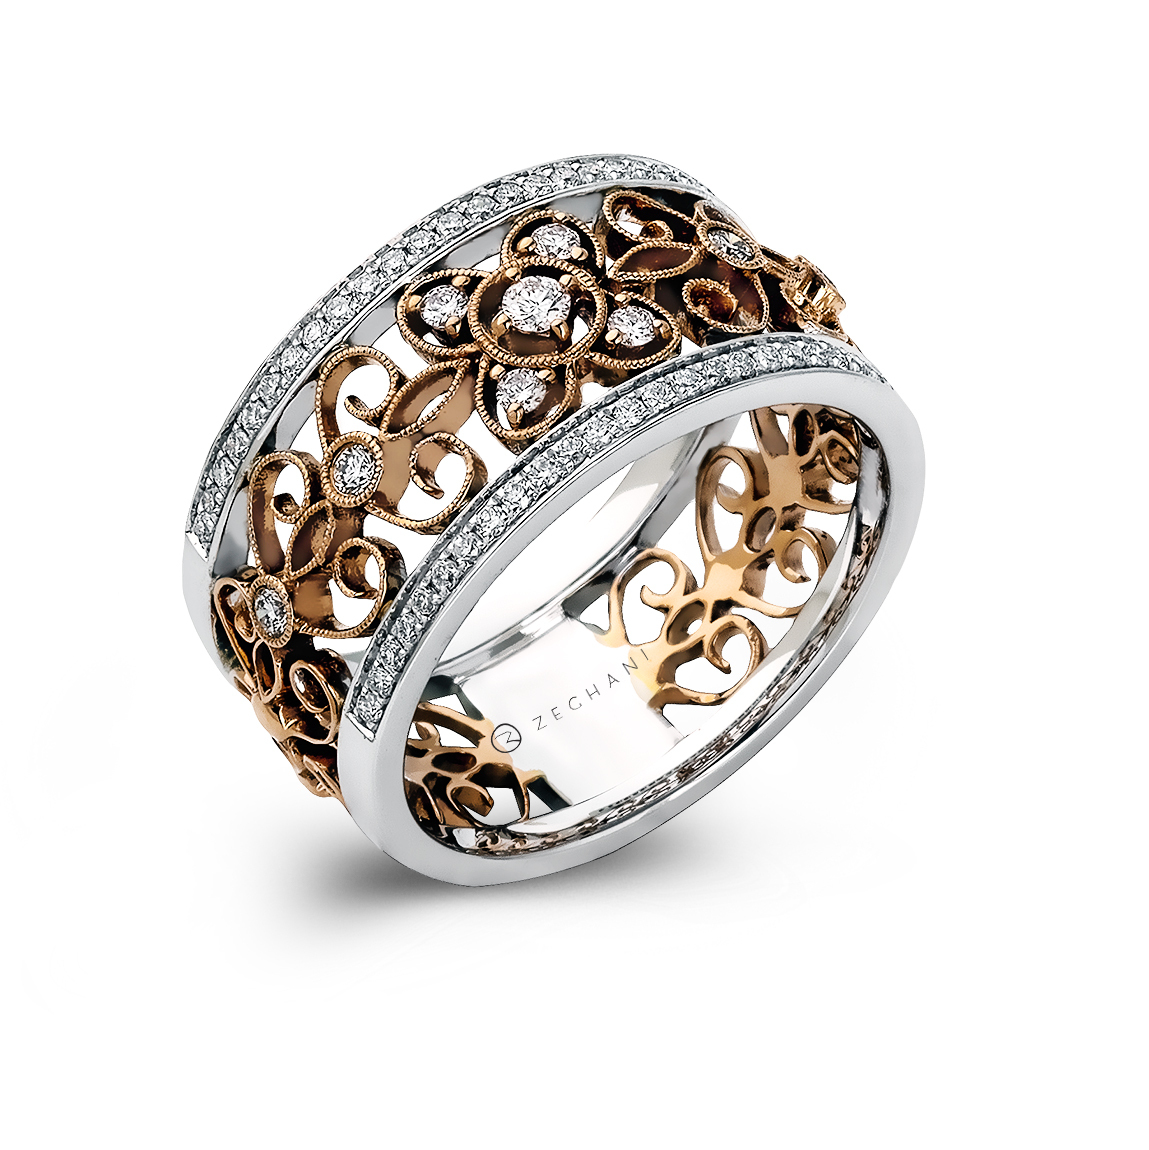 front diamonds bands total gold with ladies weight carat karat of white band wedding product